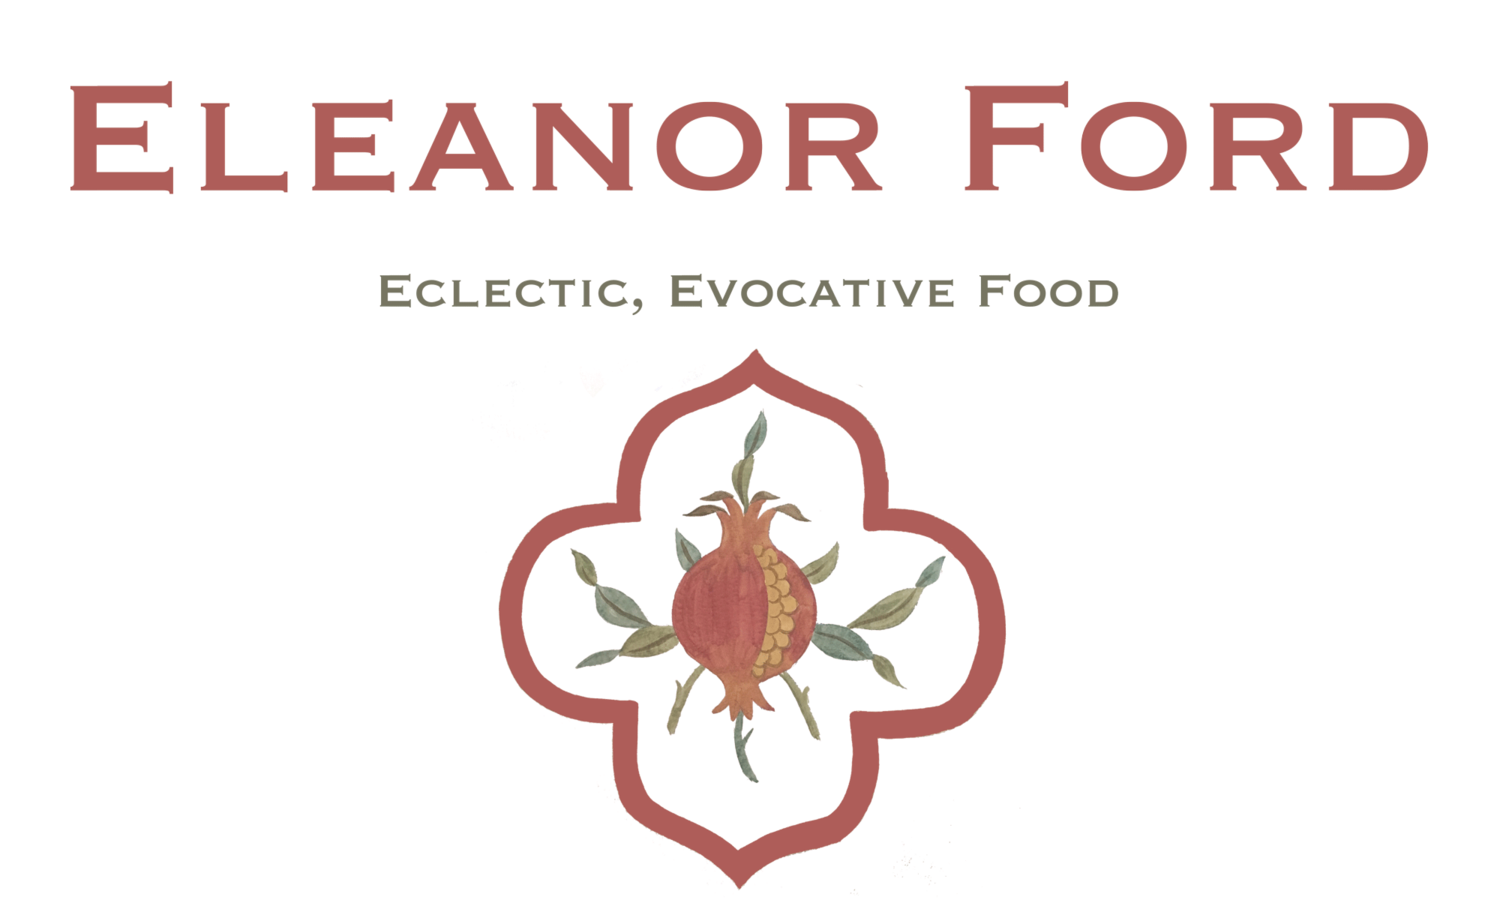 Eleanor Ford - Food and Travel Books